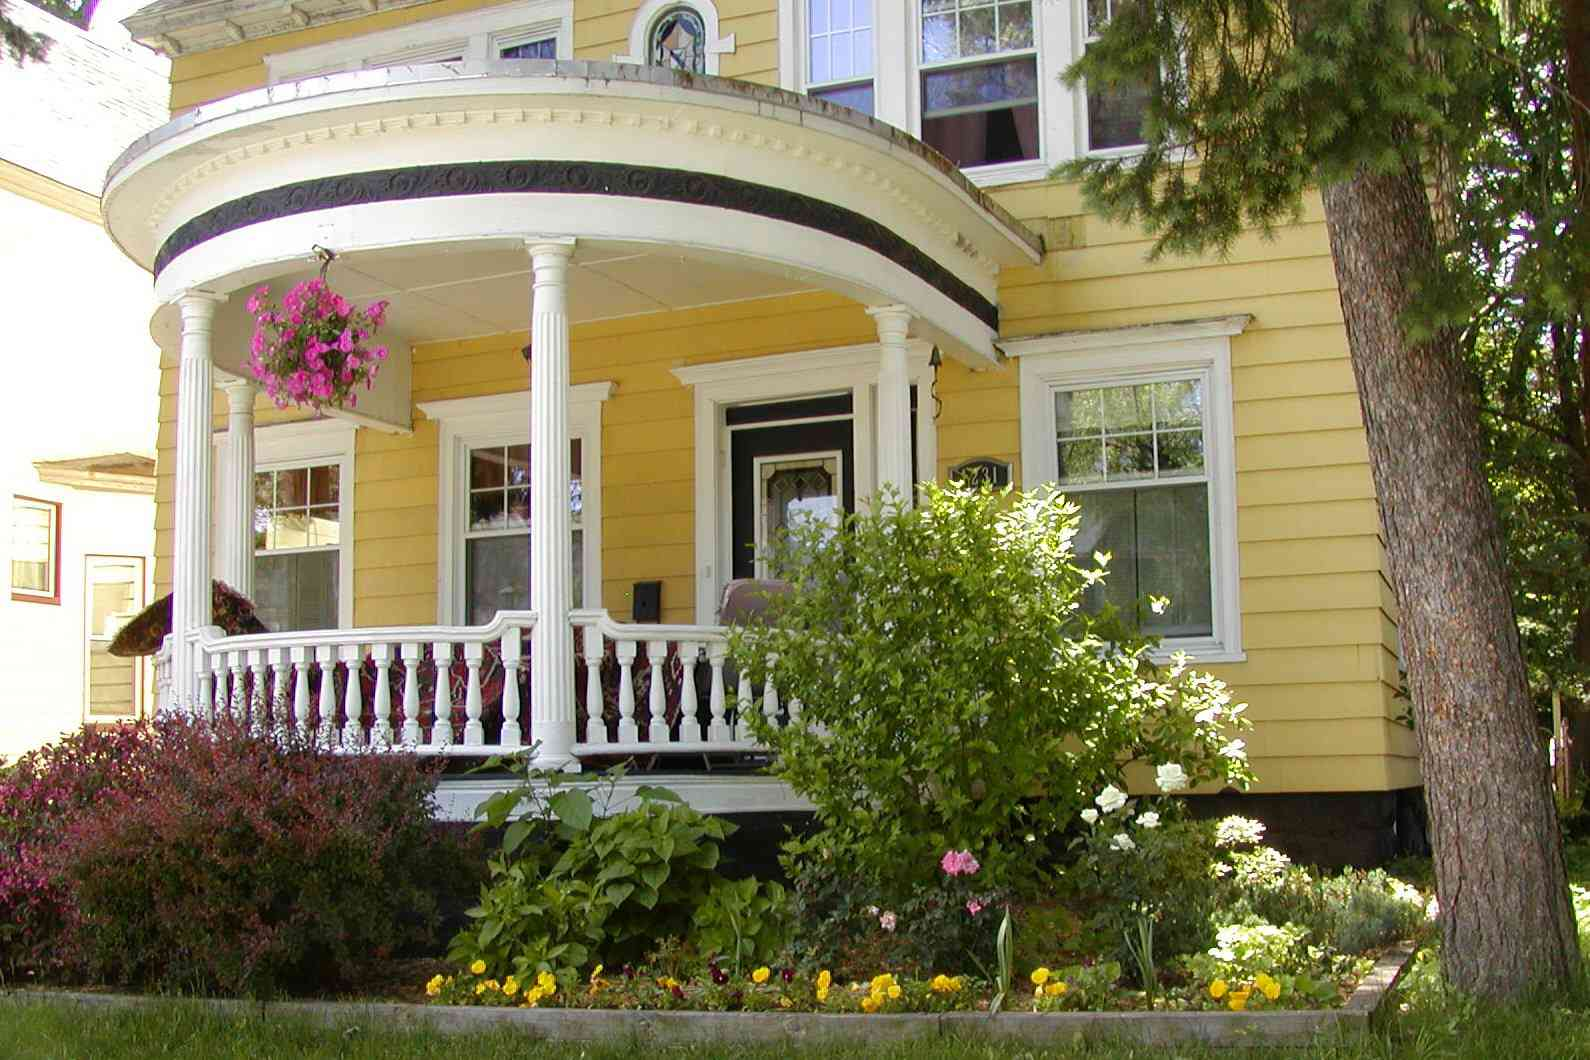 Doric columns on a round porch attached to the front of a yellow house